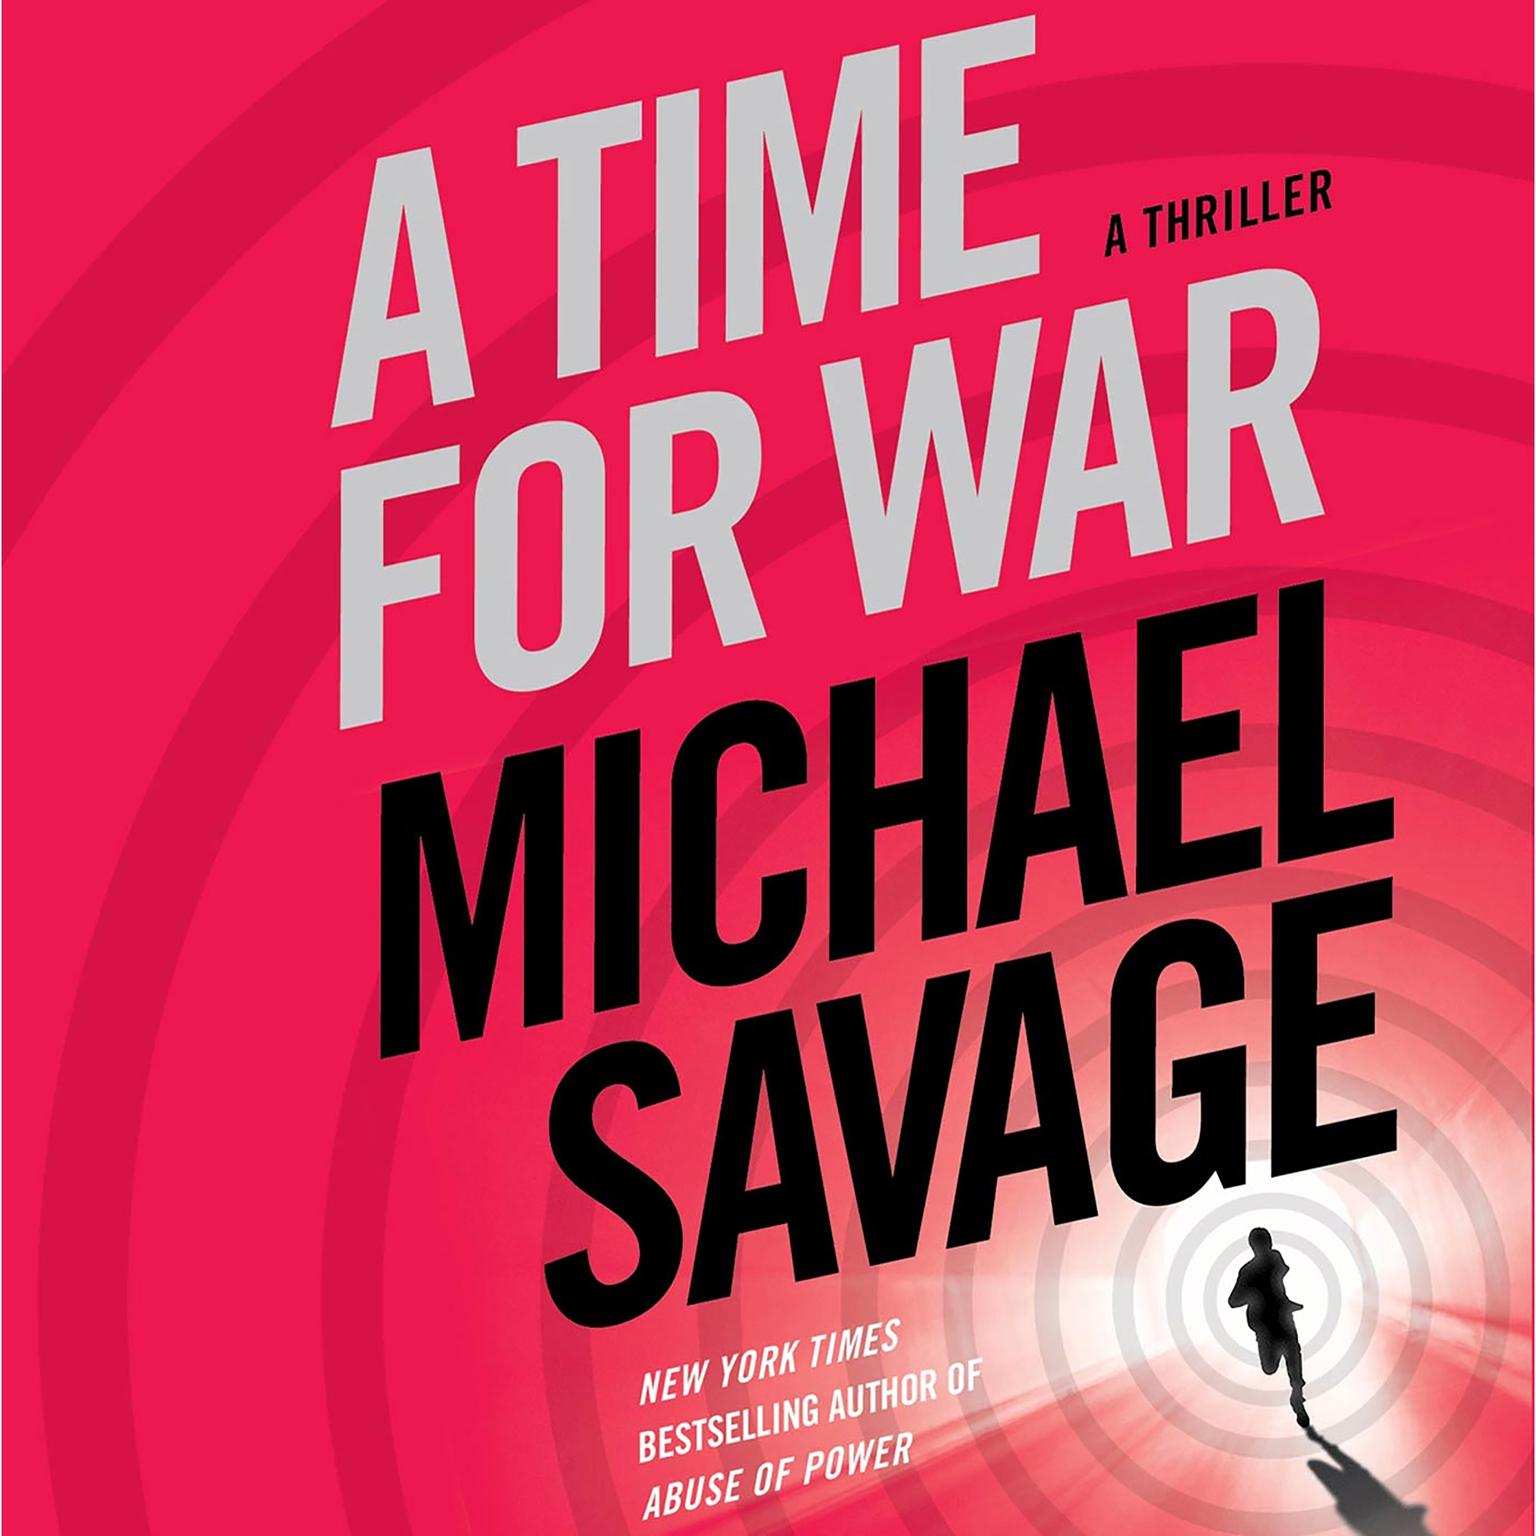 A Time for War: A Thriller Audiobook, by Michael Savage